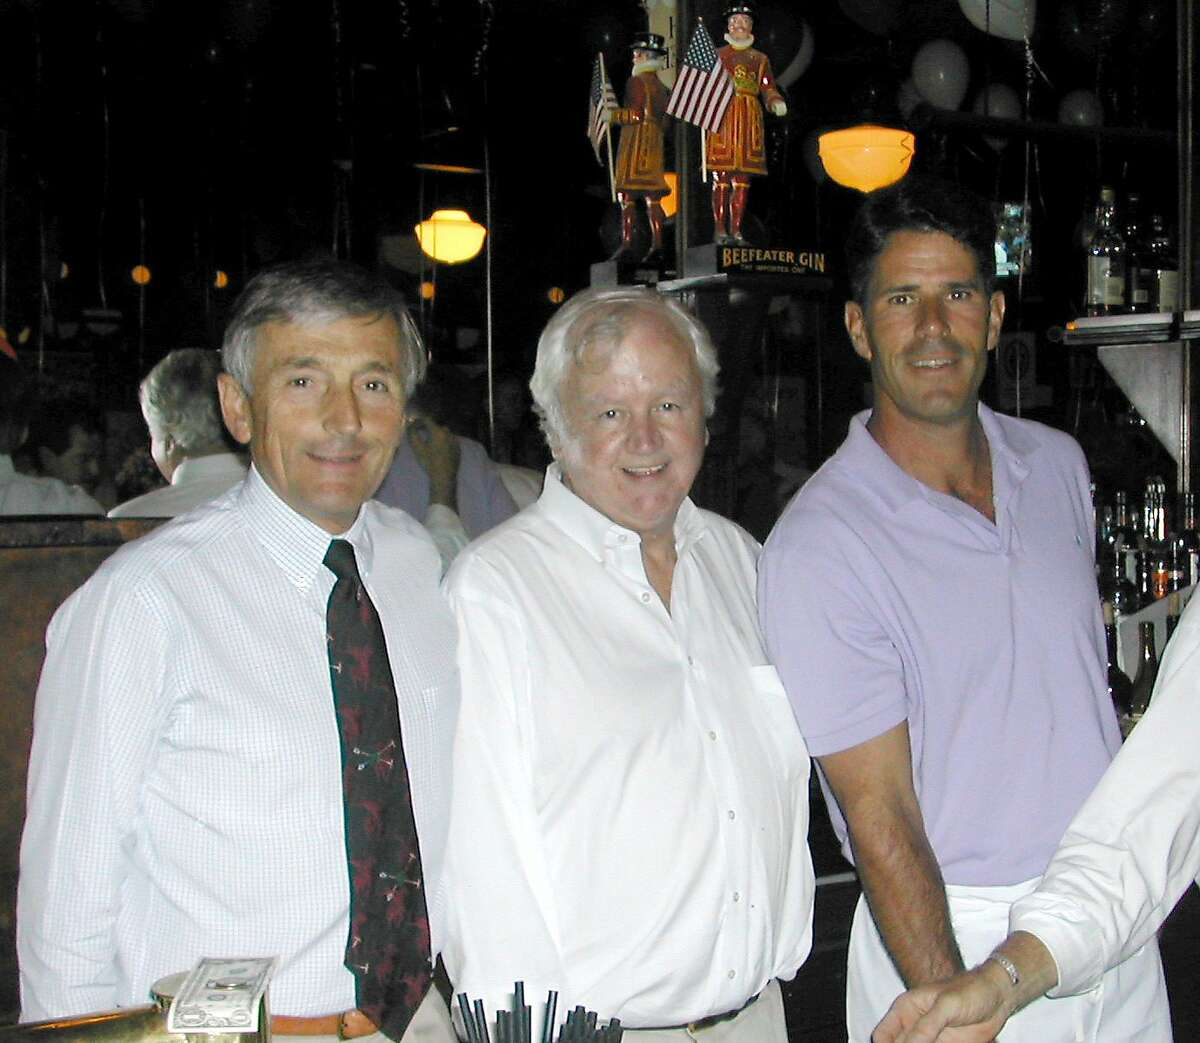 Michael McCourt, center, stands in this 2004 photo with Perry Butler and Steve Bono.